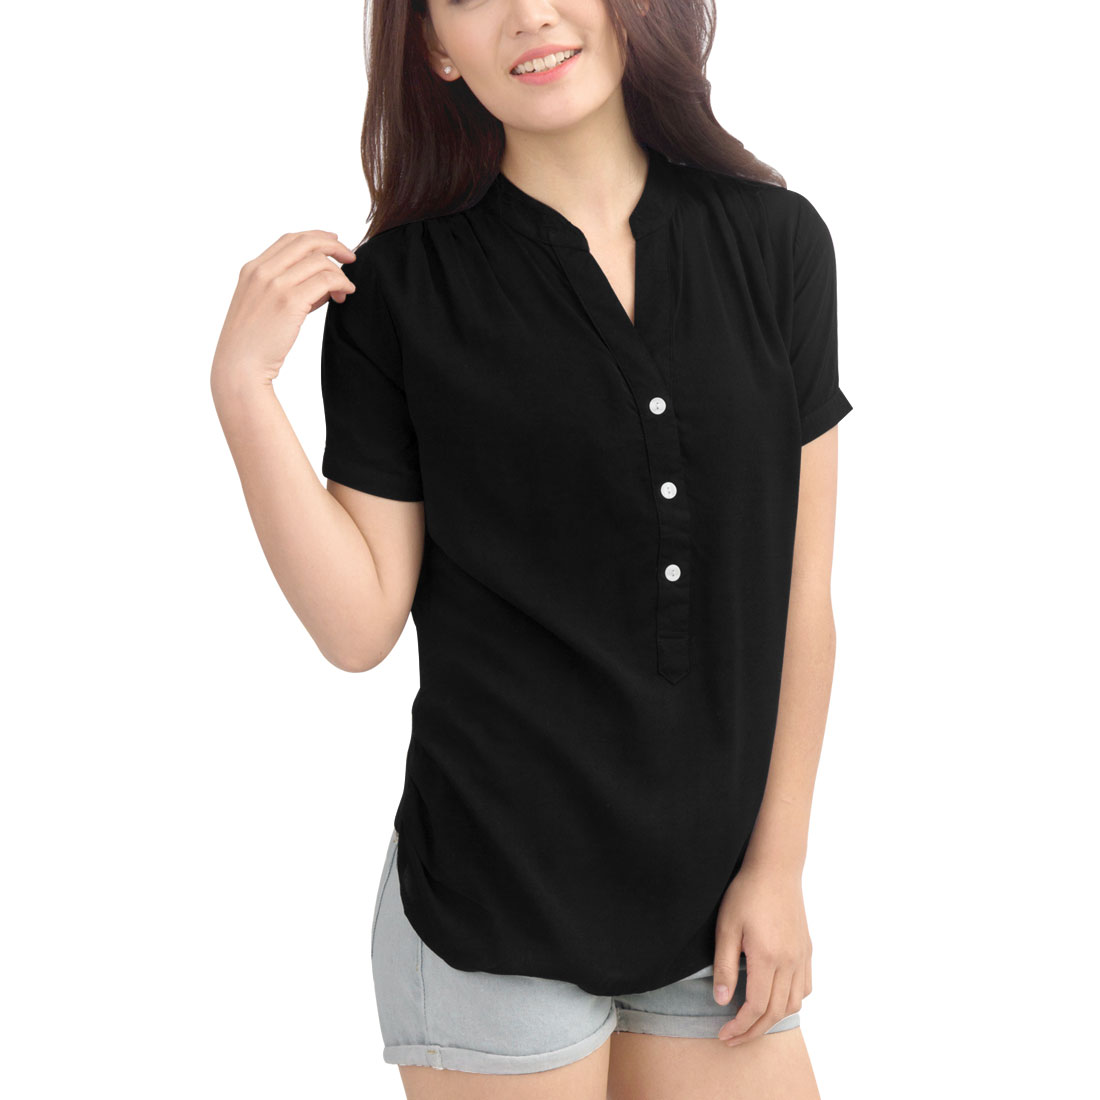 Allegra K Women's Casual Short Sleeve 1/2 Placket Hi-Lo Shirt Black (Size M / 8)